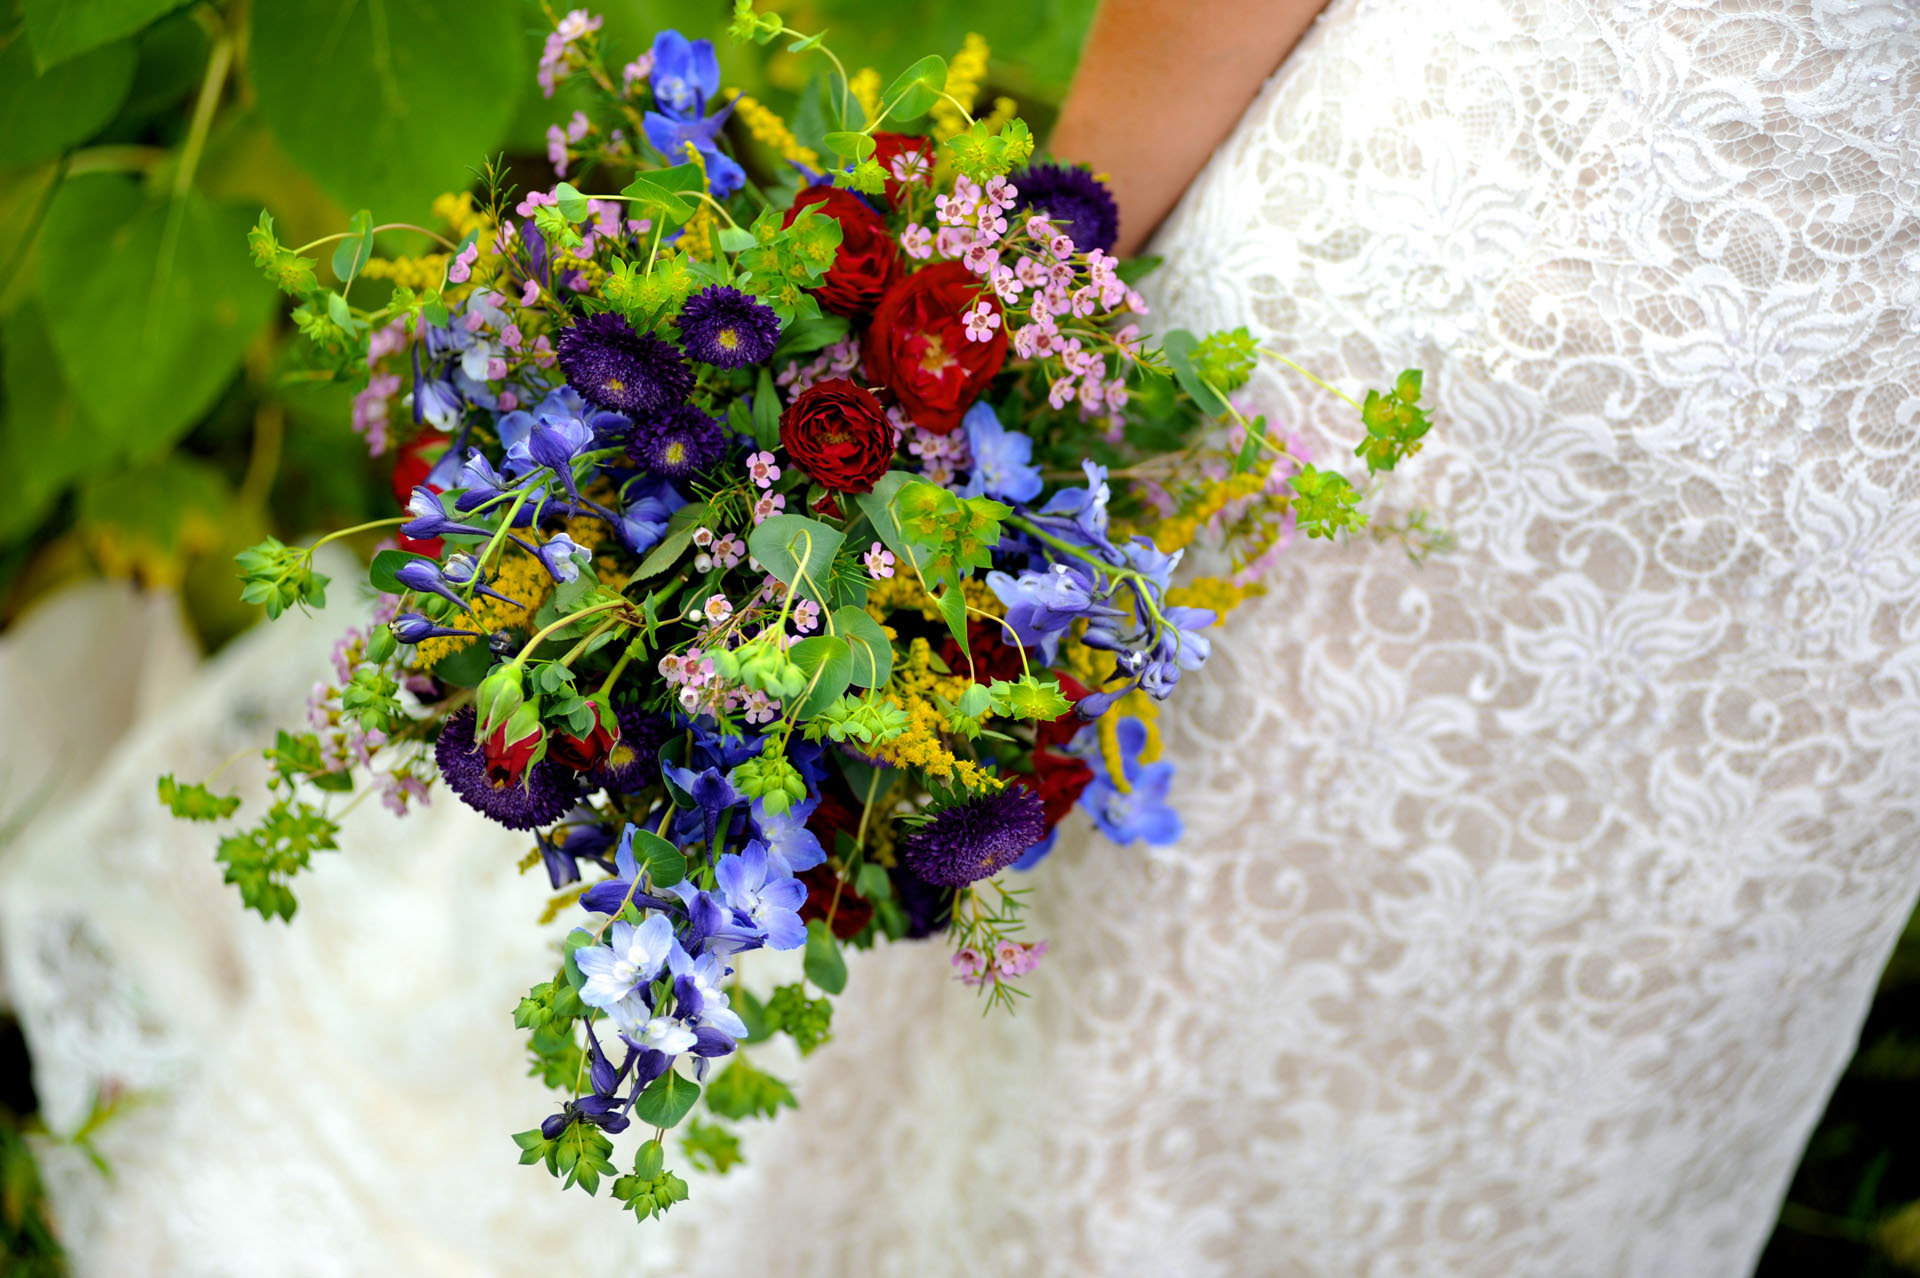 Michigan country wedding wedding photographer's photo of the bride's bouquet of wildflowers at the Michigan country wedding.